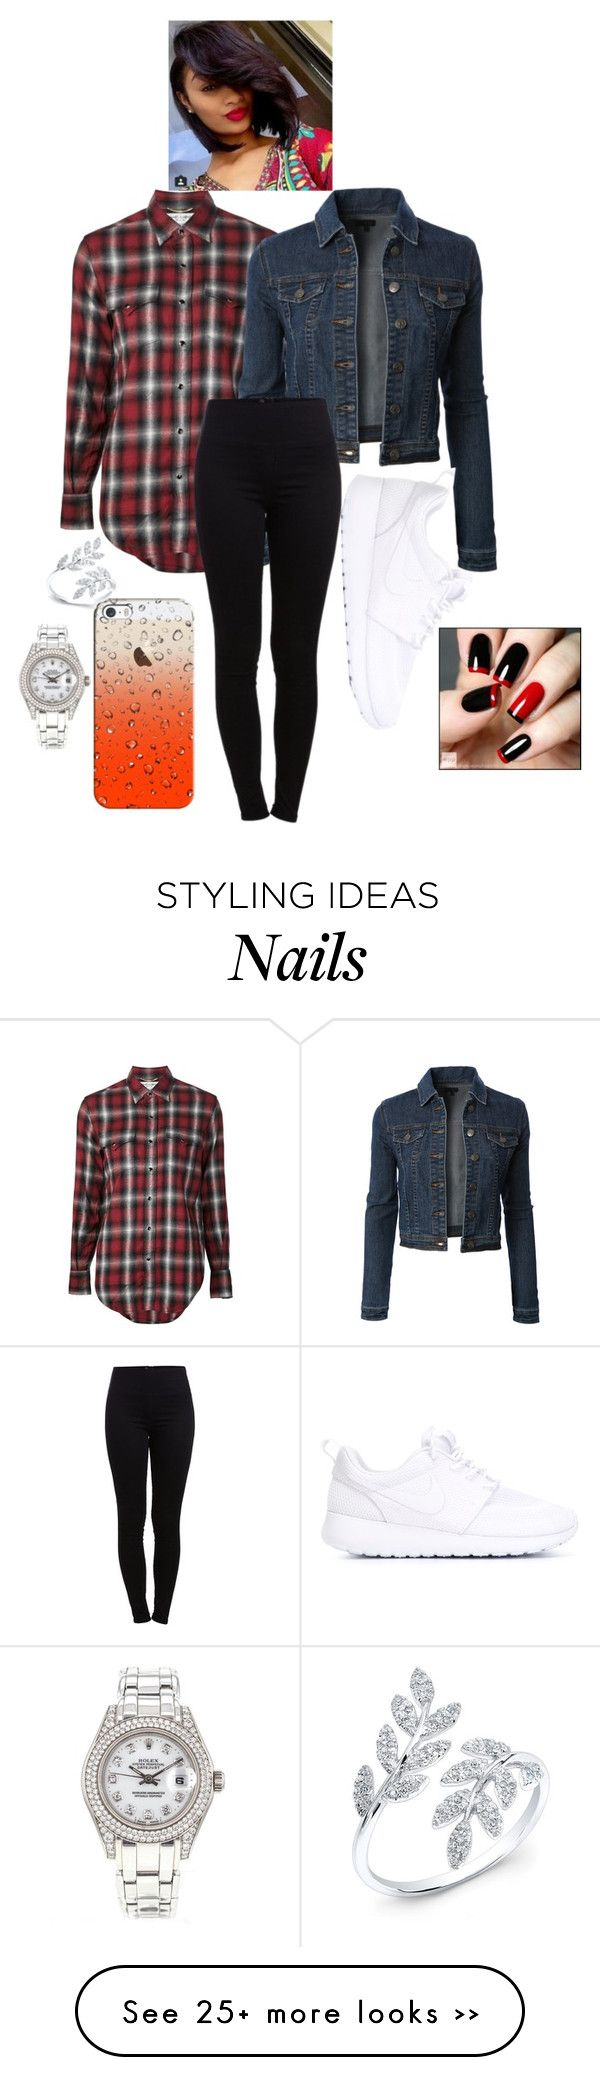 """Untitled #1419"" by lylydenisegaston on Polyvore featuring Yves Saint Laurent, LE3NO, Pieces, NIKE, Casetify and Rolex"